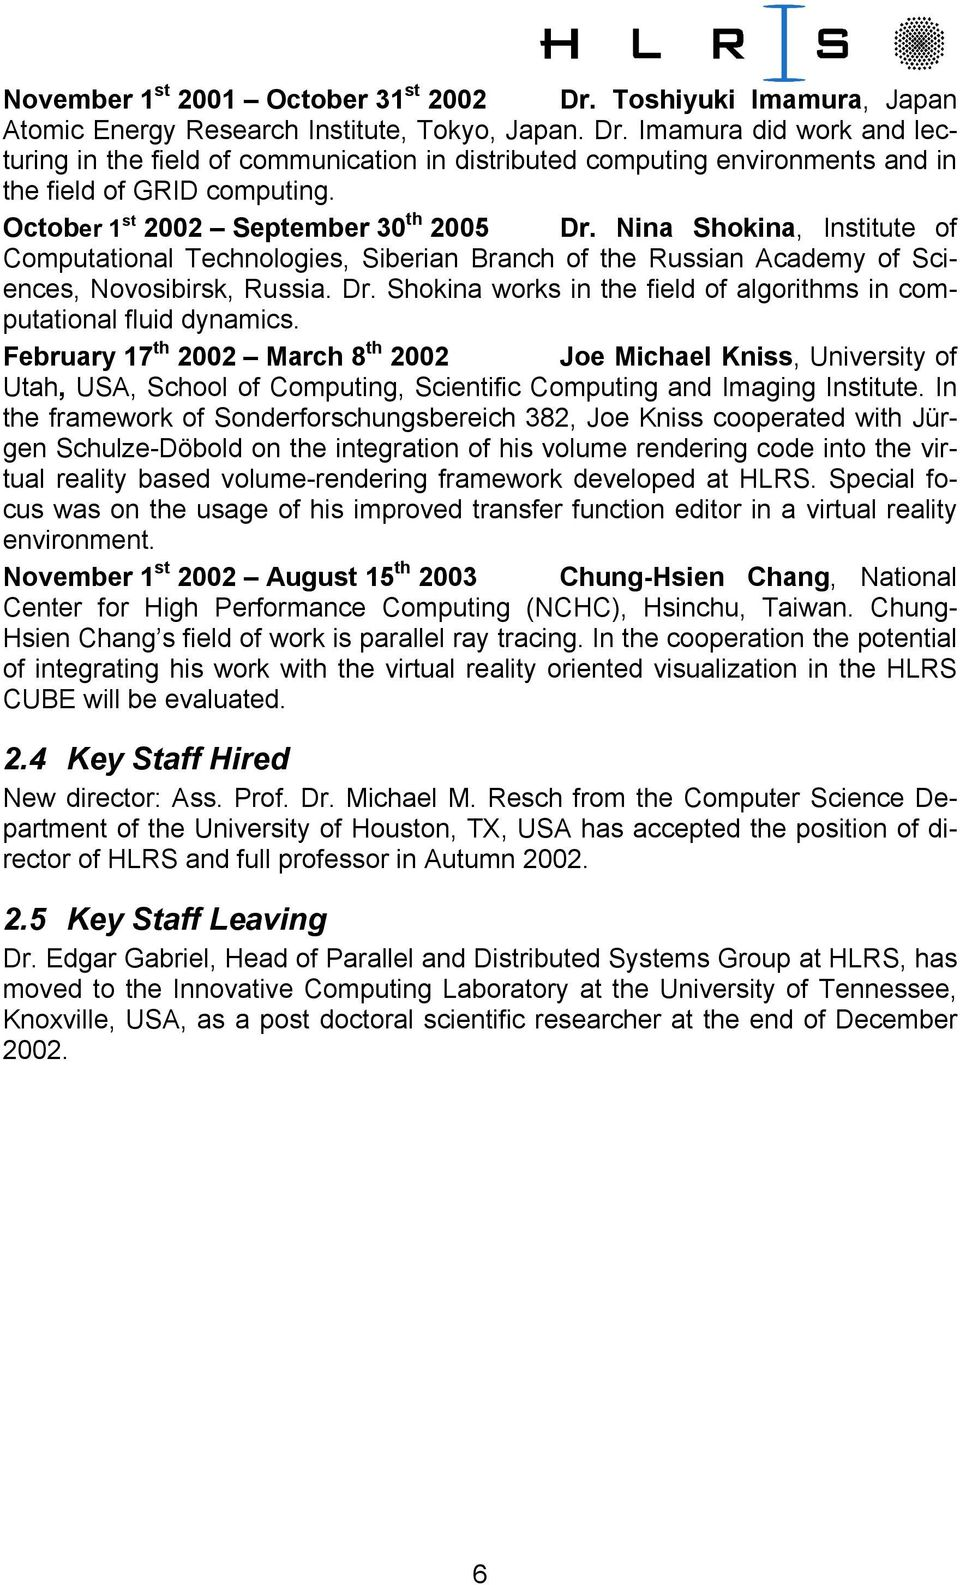 February 17 th 2002 March 8 th 2002 Joe Michael Kniss, University of Utah, USA, School of Computing, Scientific Computing and Imaging Institute.